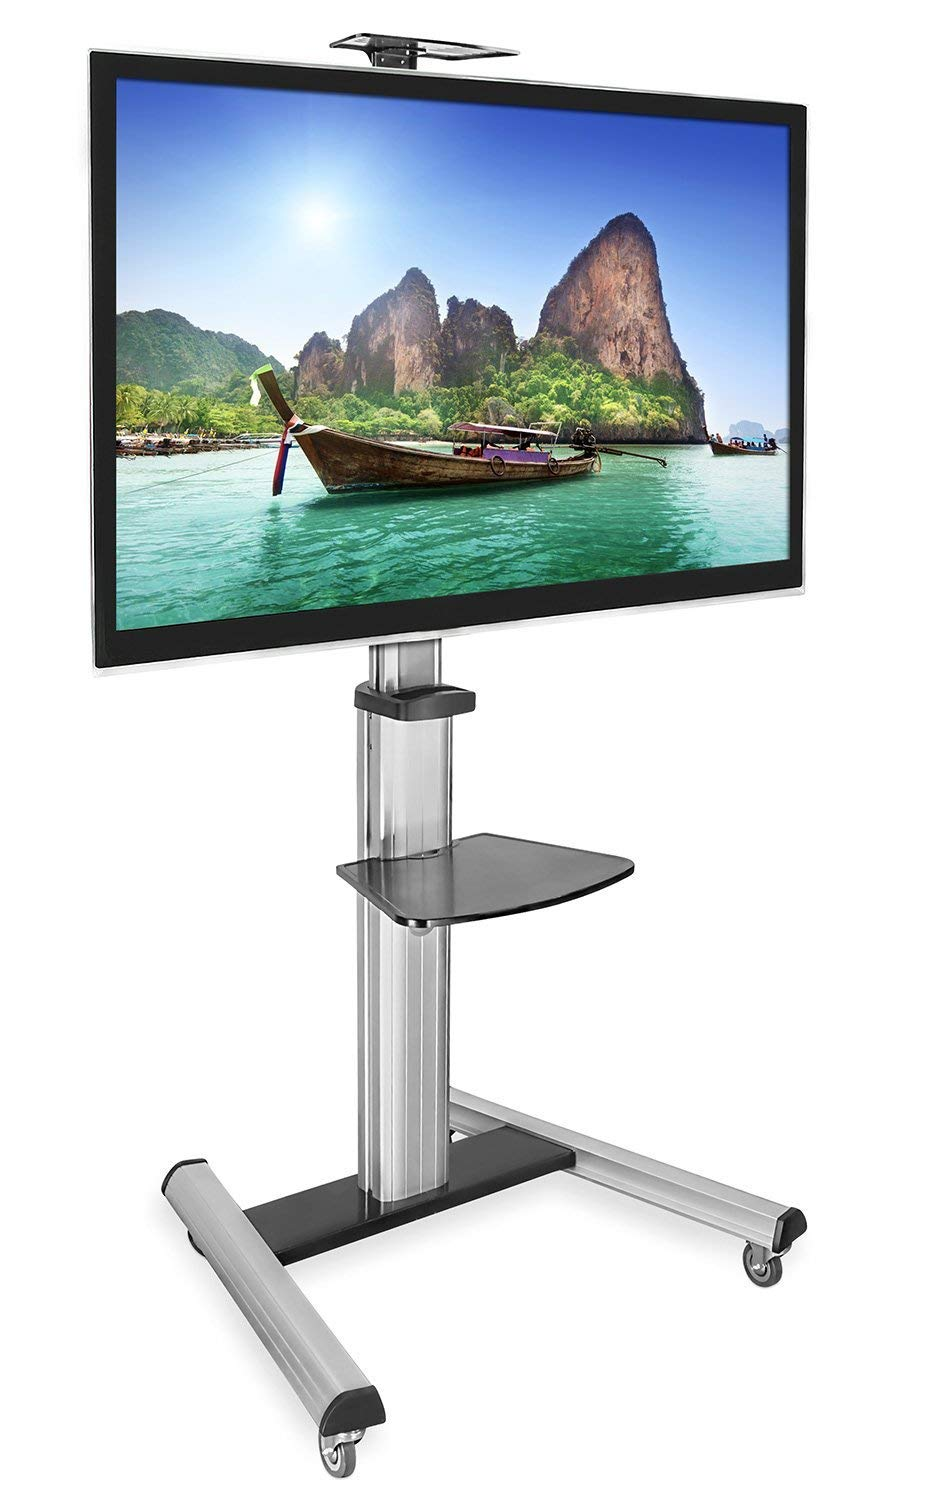 Mount-It! Mobile TV Stand for Flat Screen Televisions, Height Adjustable Rolling TV Cart for 32, 40, 50, 55, 60, 65 and 70 Inch Screens, 110 Pound Capacity by Mount-It!